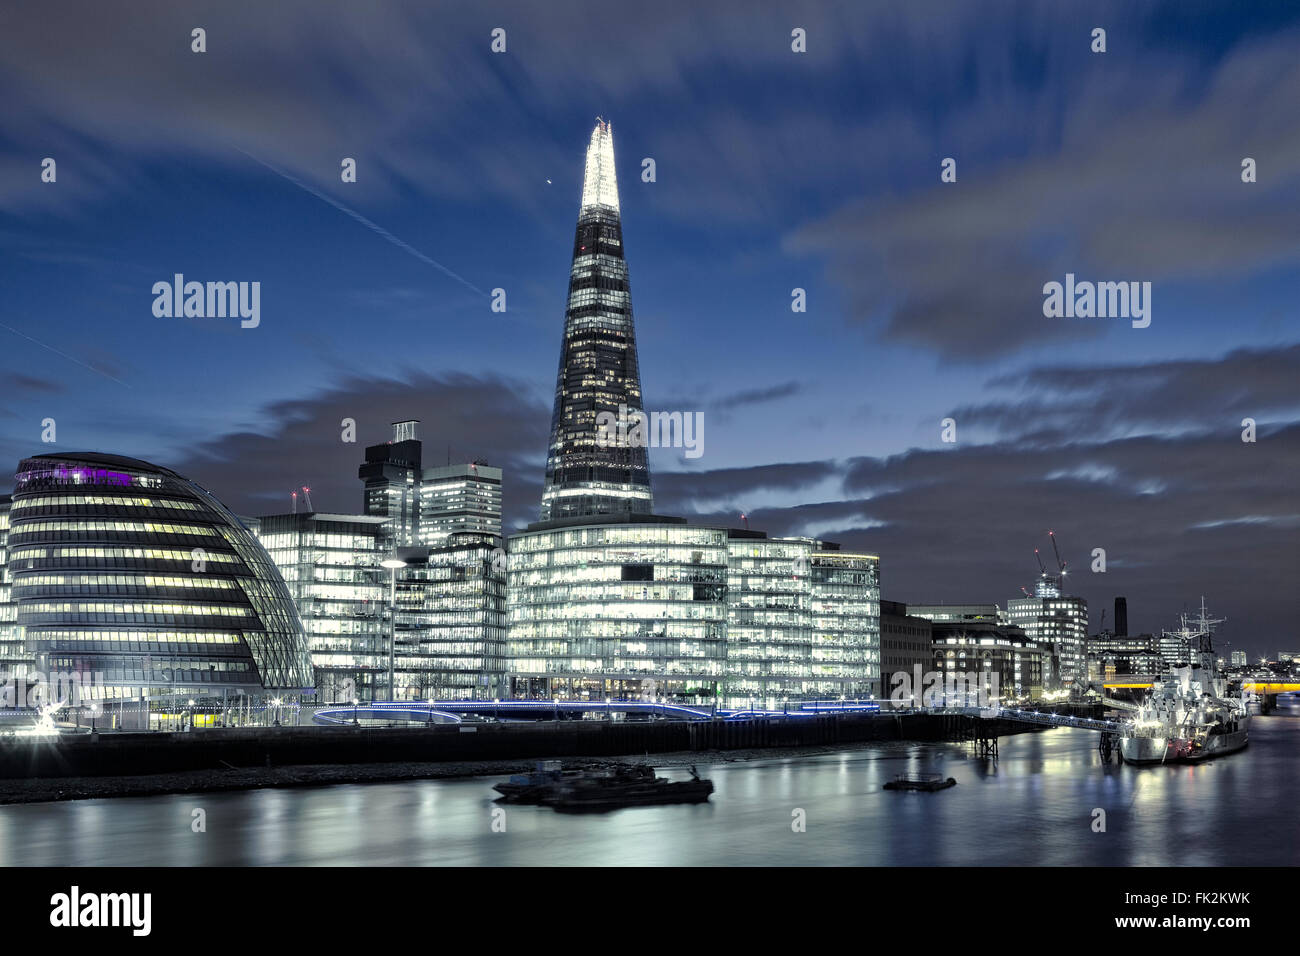 The London skyline in Southwark showing the Shard and City Hall, at night - Stock Image